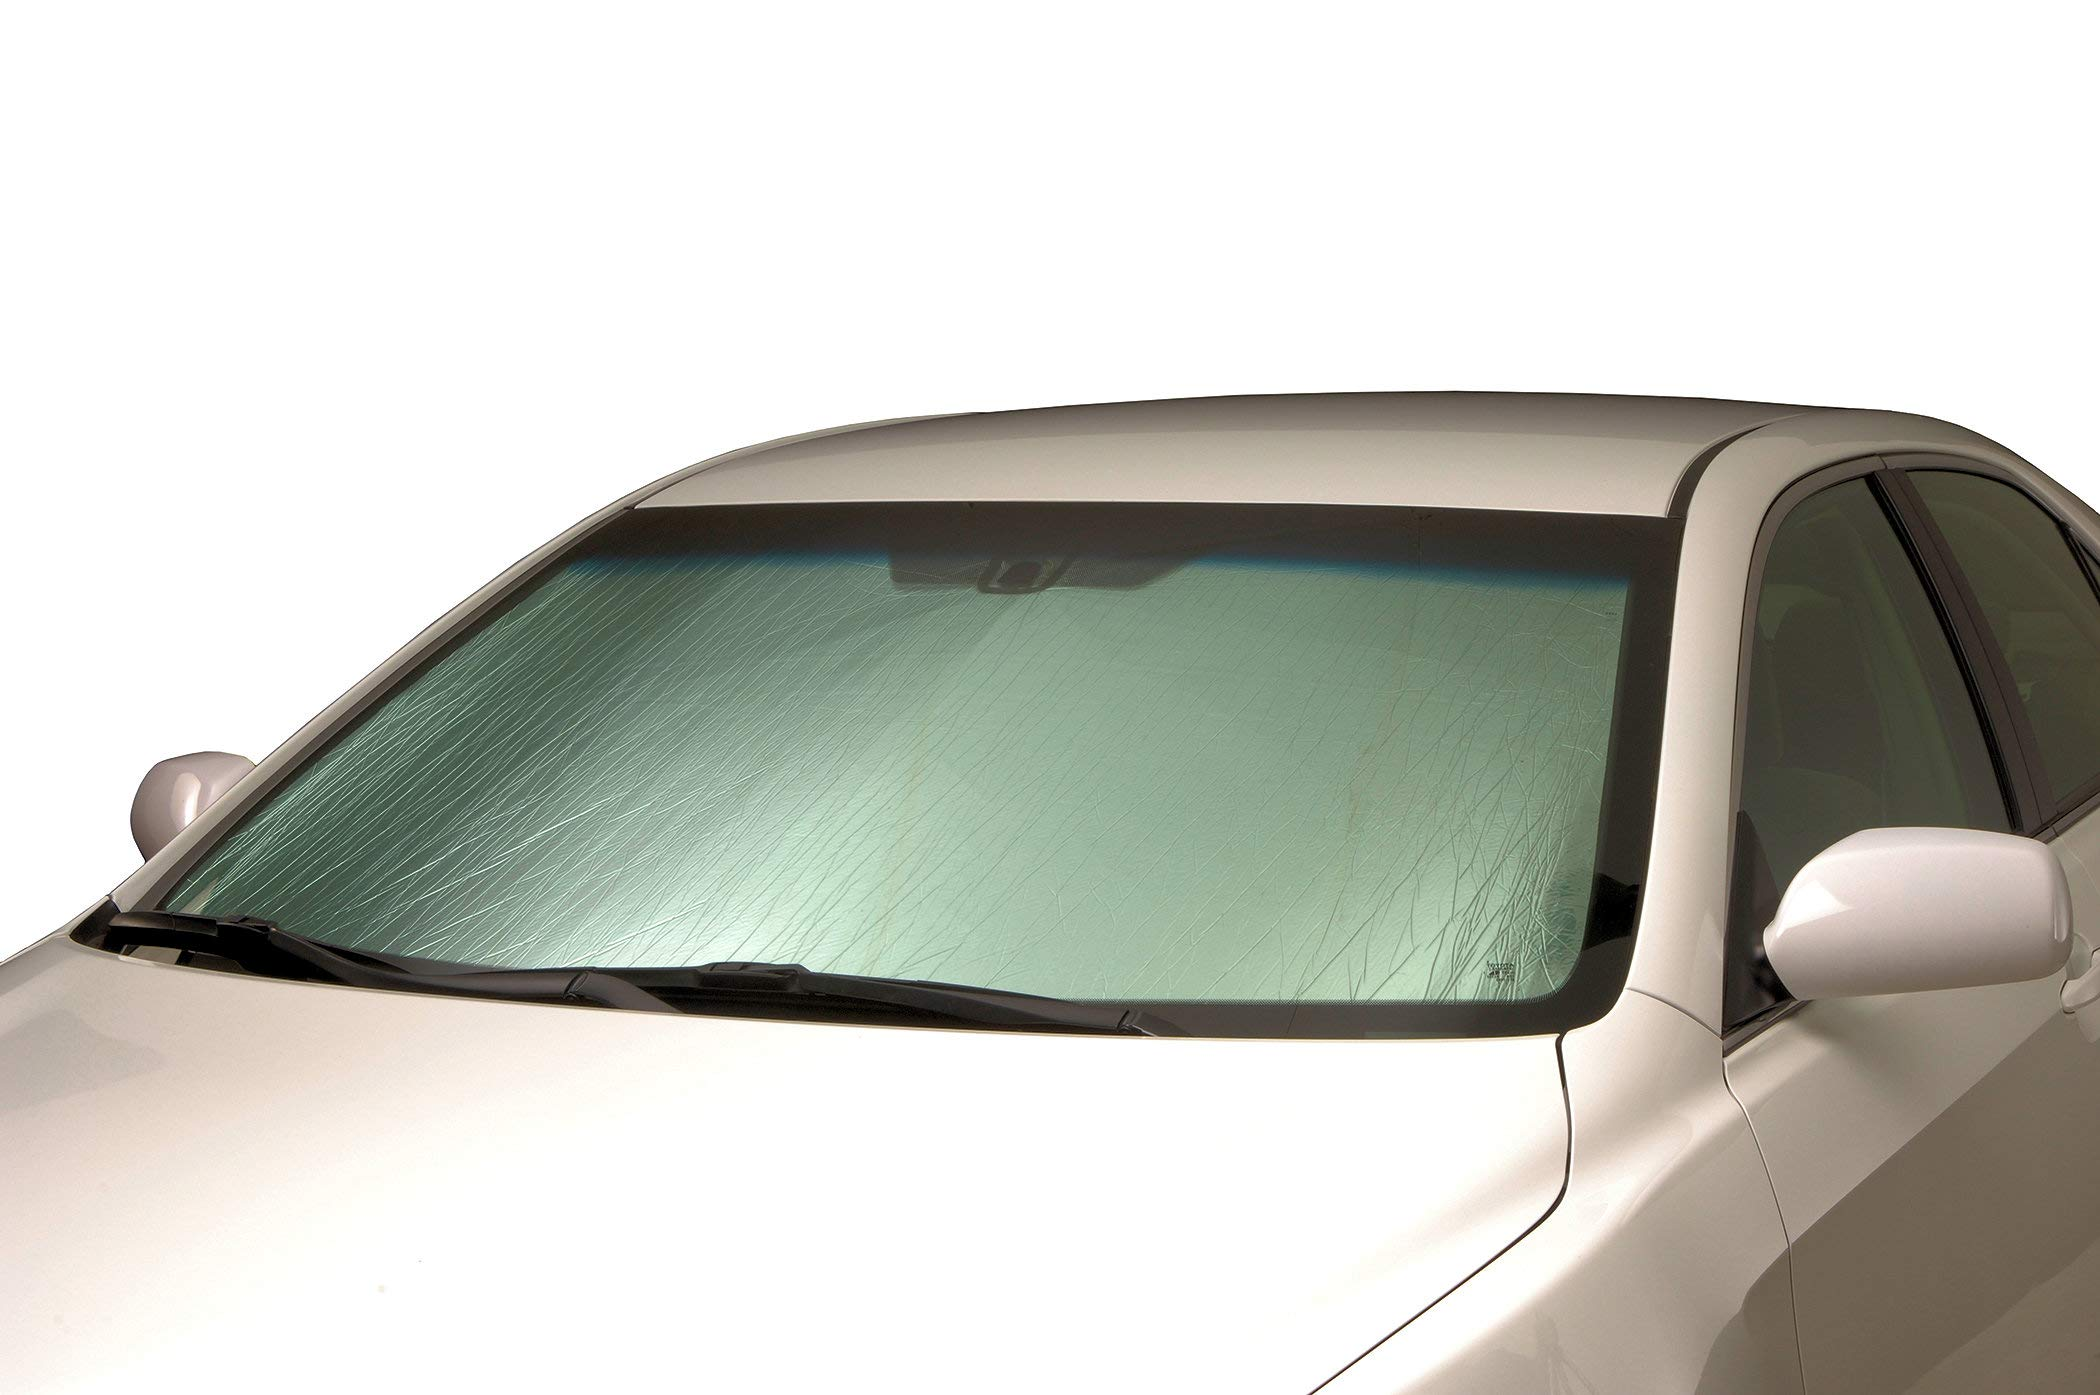 Intro-Tech Automotive TT-34 Silver Custom Fit Windshield Sunshade for Select Toyota 4Runner Models